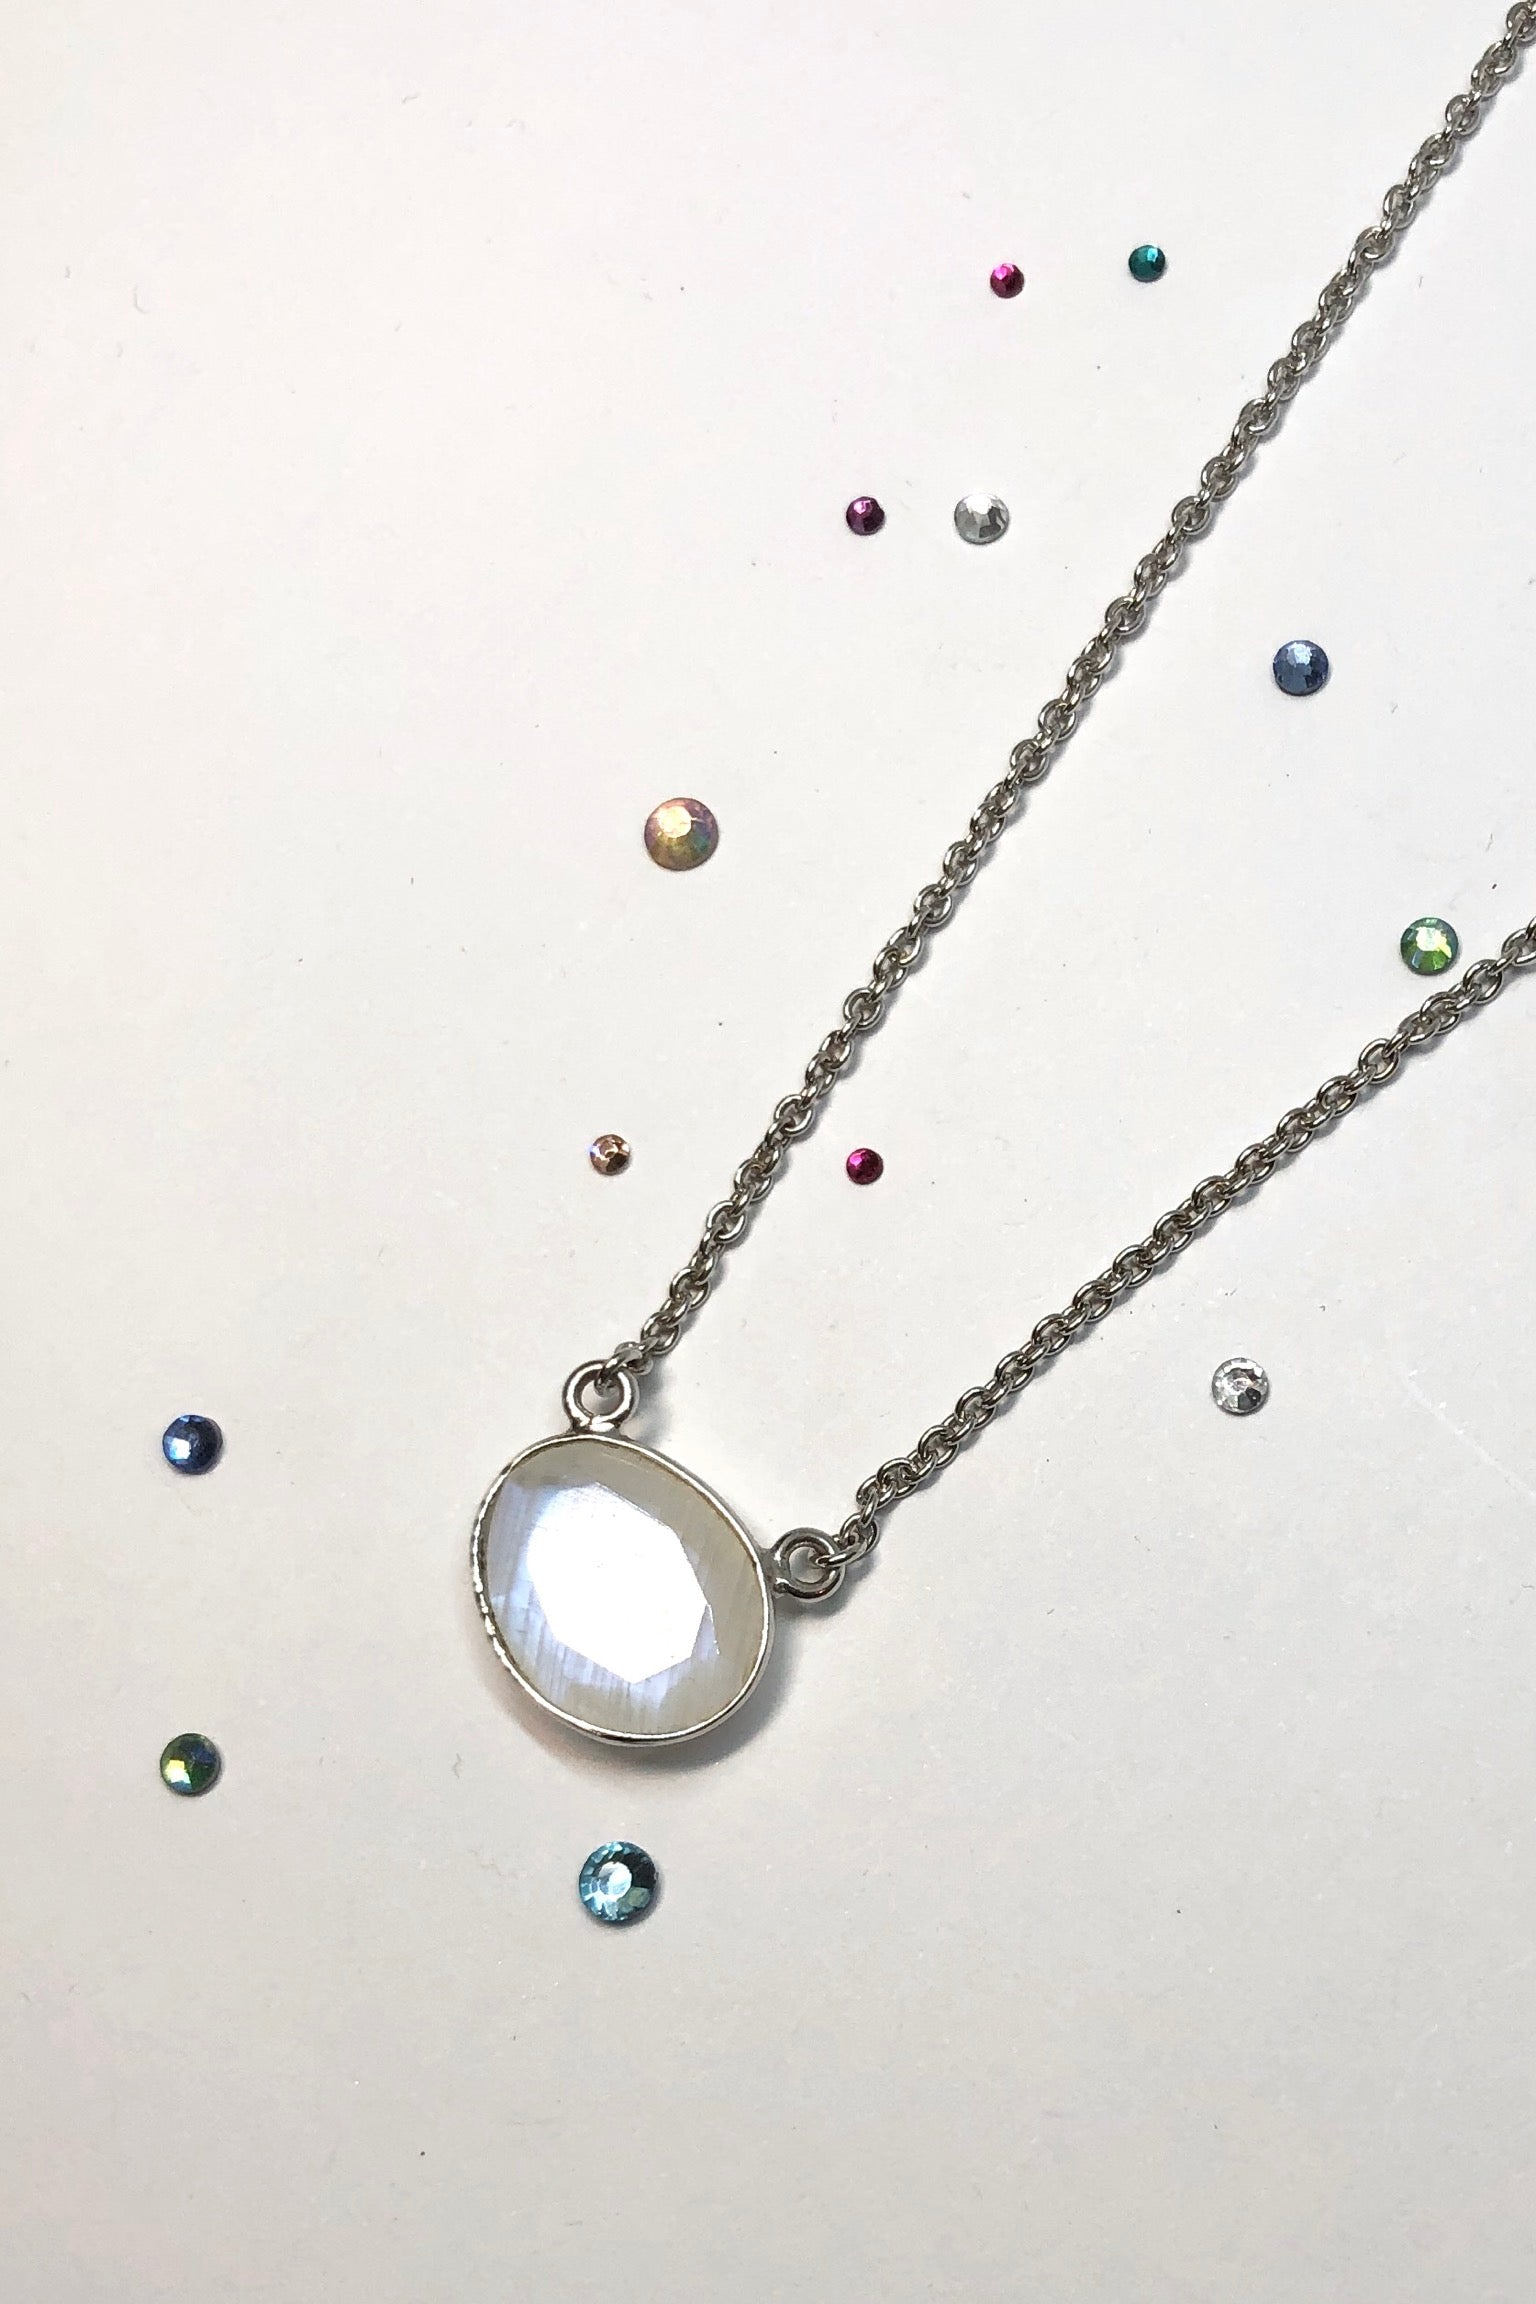 Feel at one with the moon wearing this sweet Echo pendant moonstone mono featuring traditional style pendant, 43 cm Silver chain, moonstone.